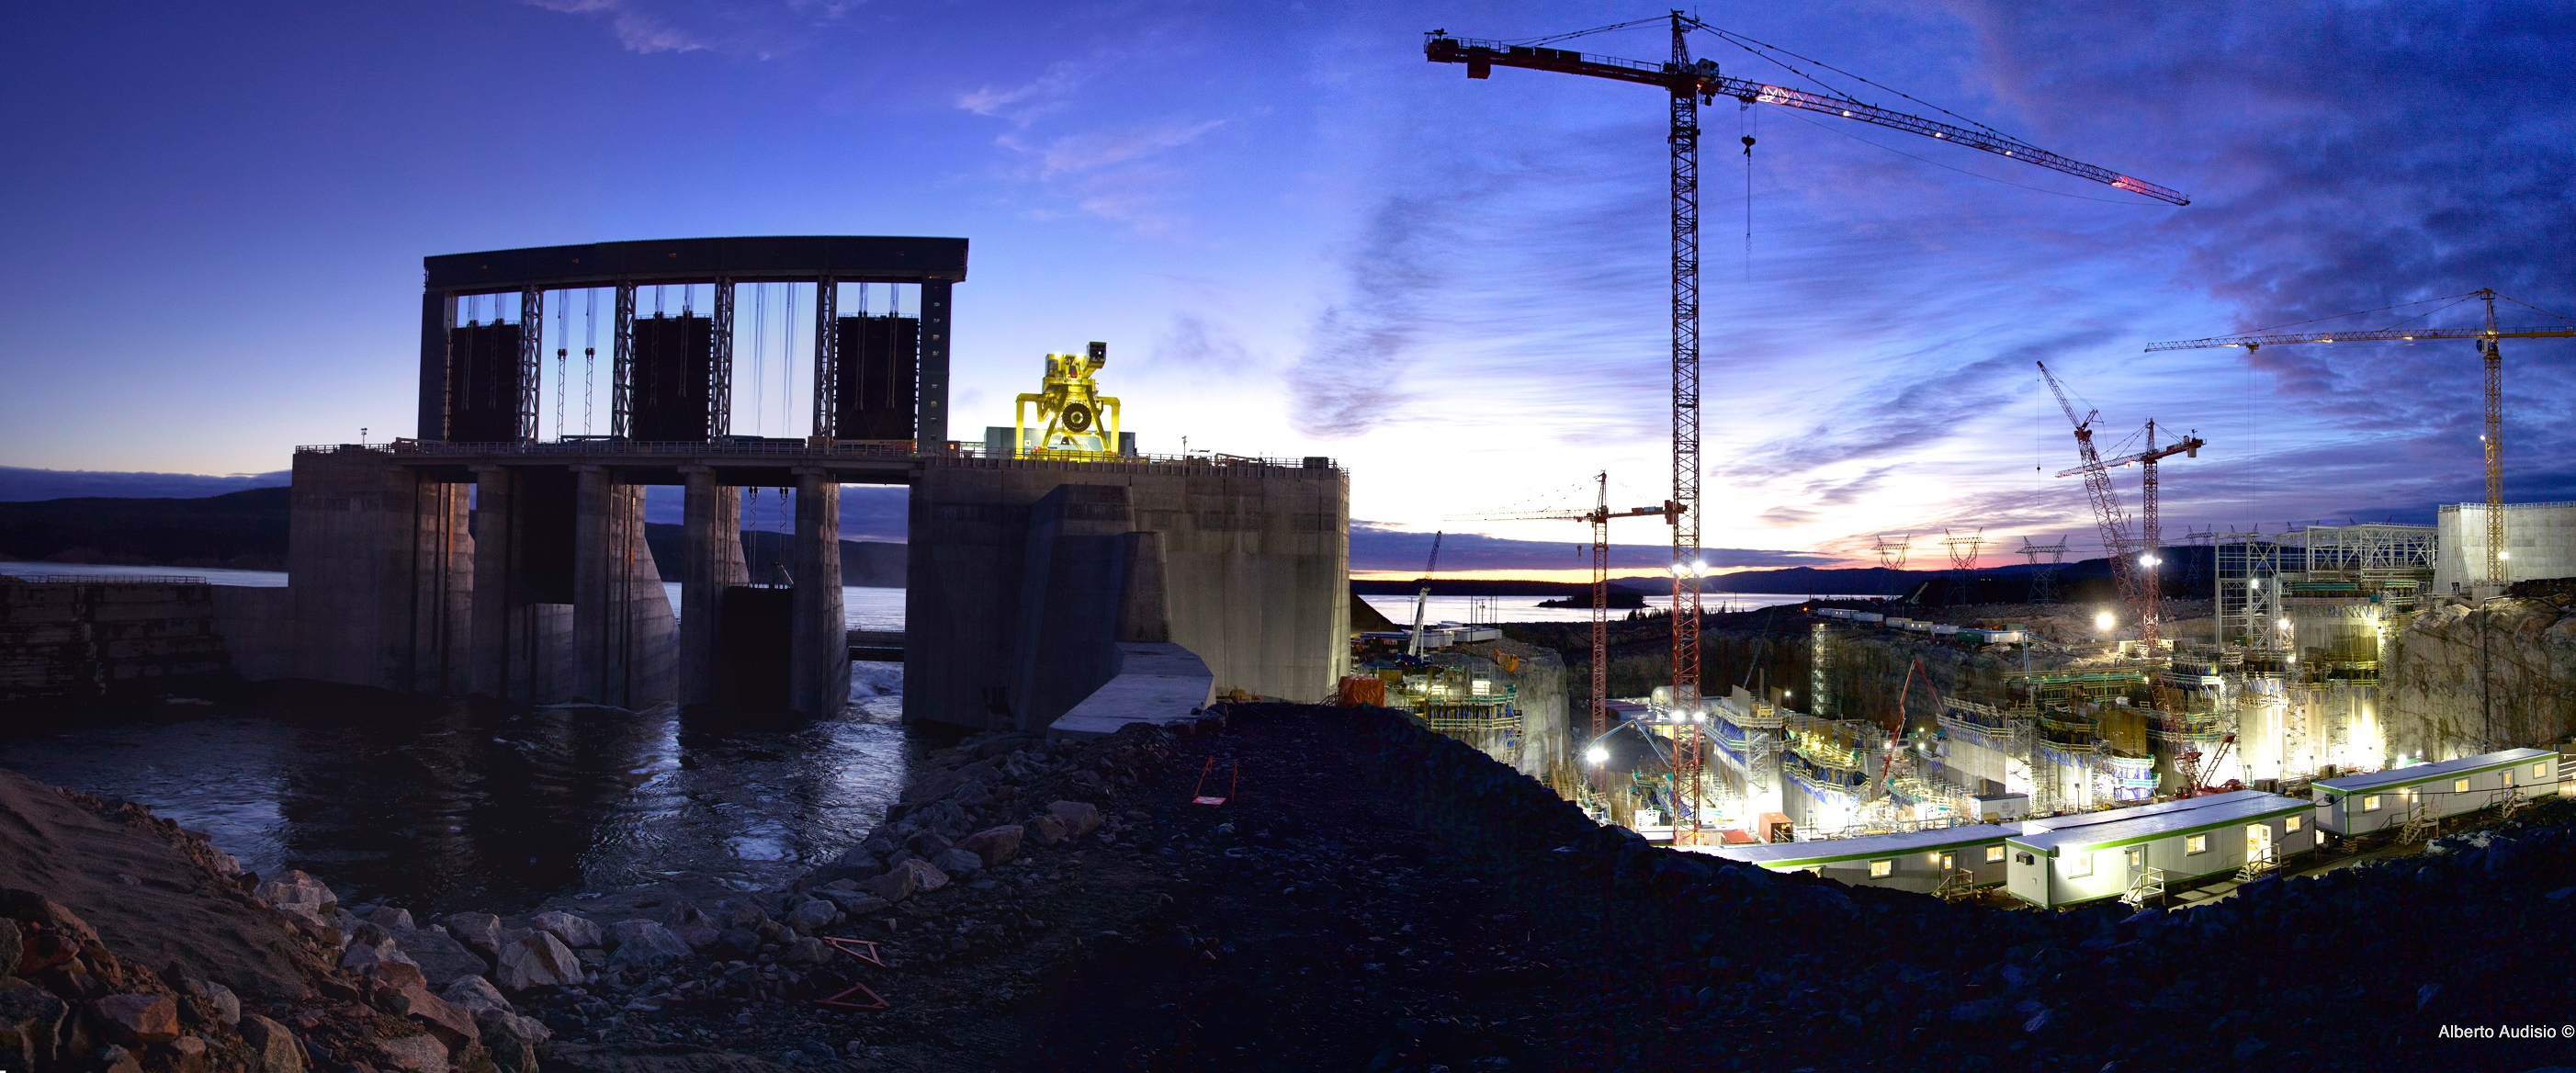 Spillway and Powerhouse at Night